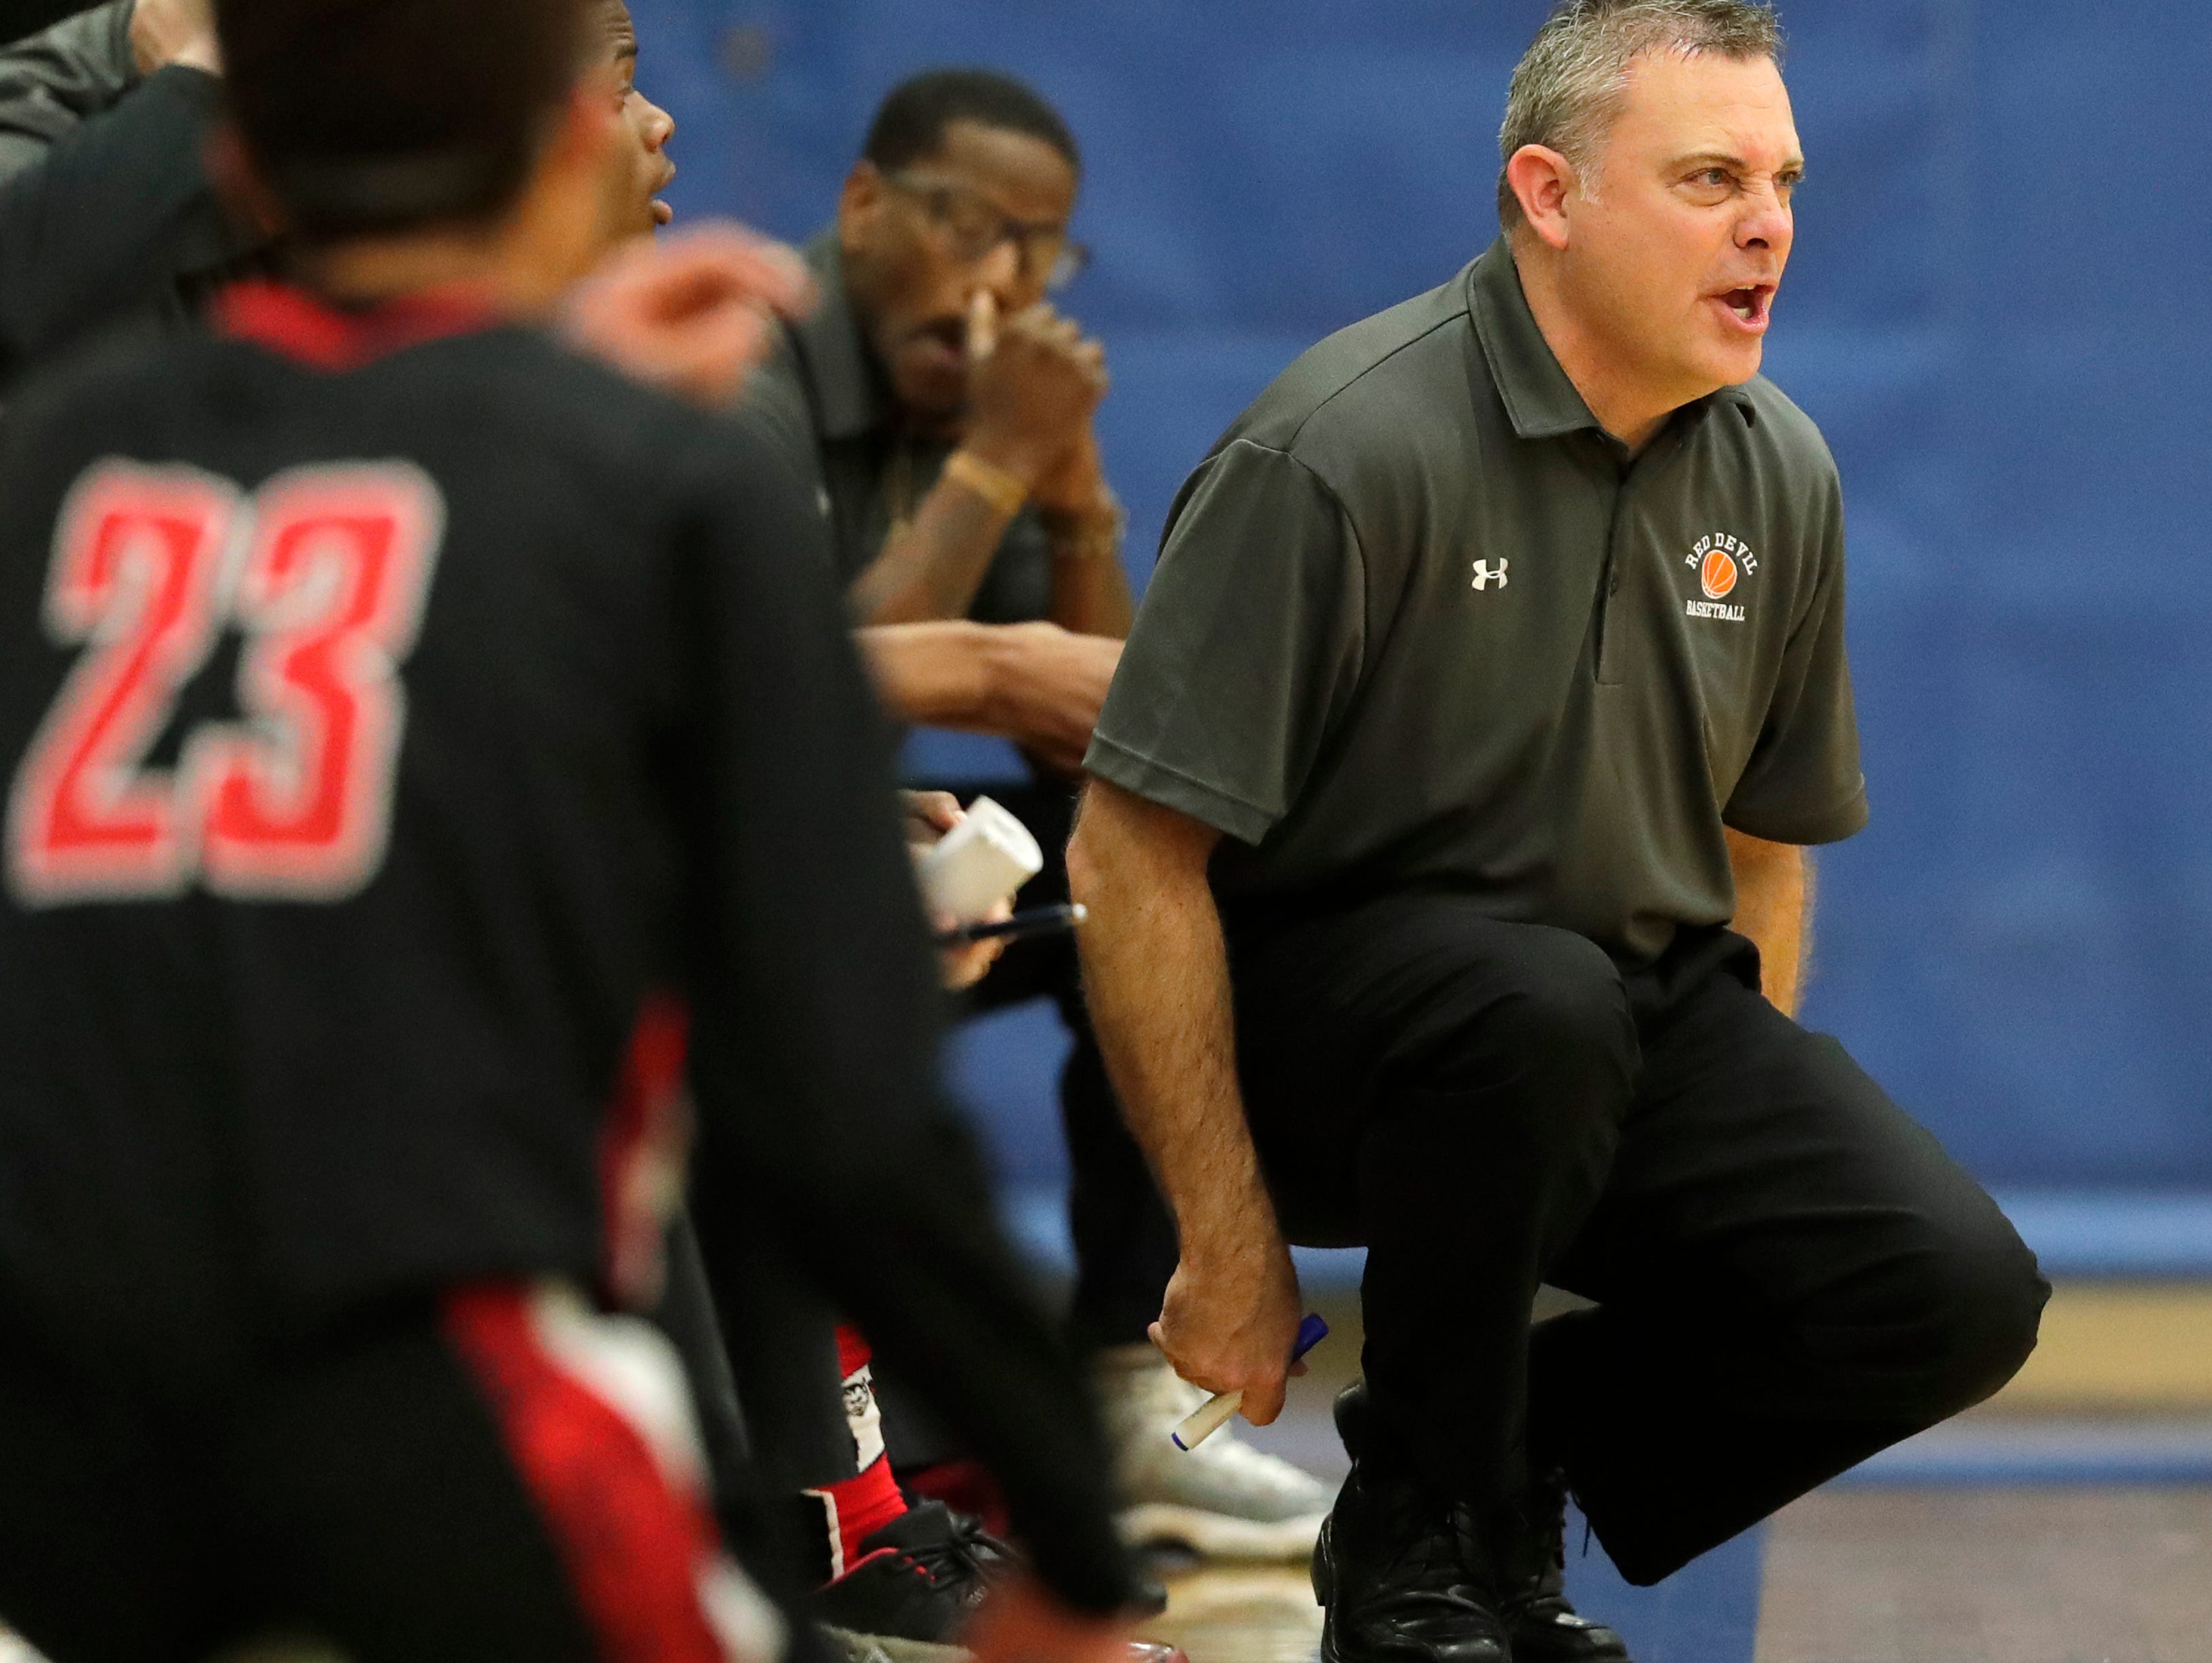 Green Bay East coach Rick Rosinski shouts instructions during a game against Green Bay Southwest on Dec. 28. Rosinski helped found the Silent Night basketball games between East and West.